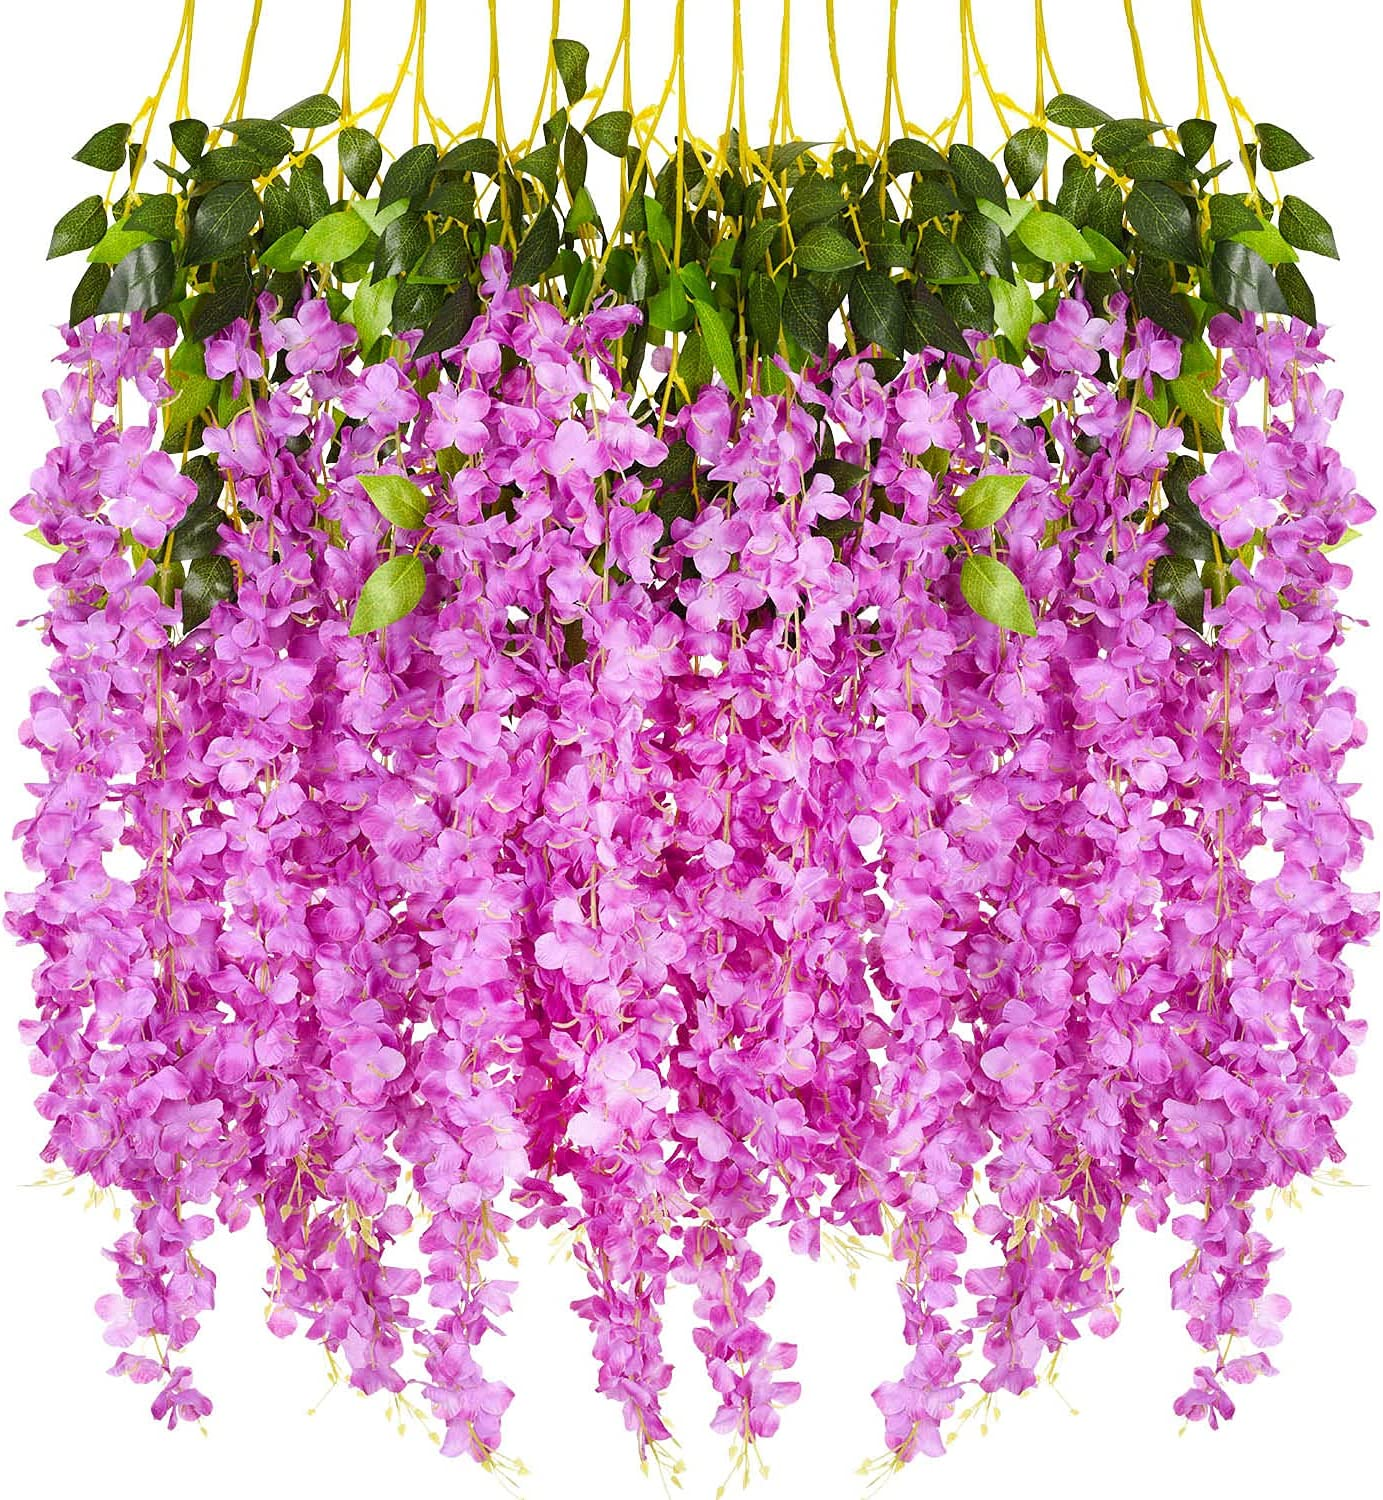 DearHouse12 Pack Artificial Fake Wisteria Vine Ratta Hanging Garland Silk Flowers String Party Home Wedding Decor, 3.75 Feet/Piece,Pink